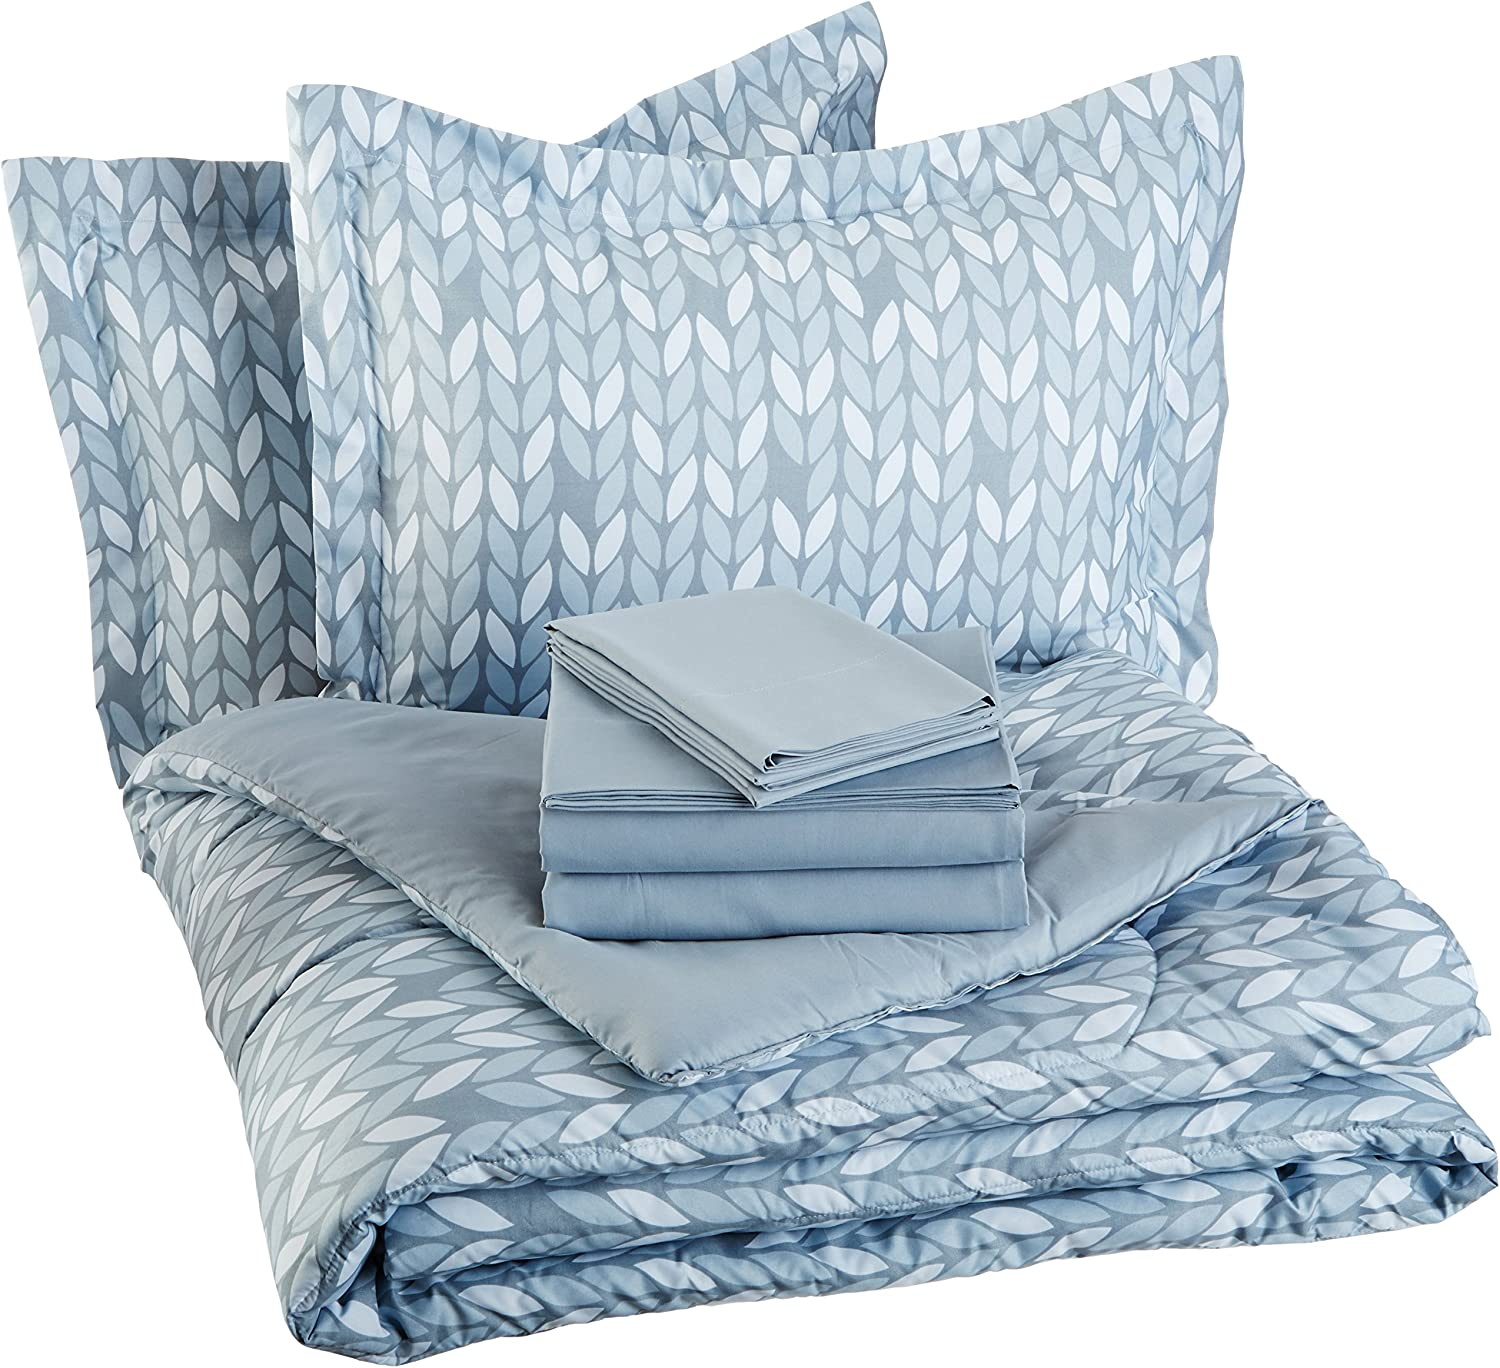 Basics 5-Piece Light-Weight Microfiber Bed-In-A-Bag Comforter Bedding Set - Twin or Twin XL, Navy Simple Plaid: Home & Kitchen